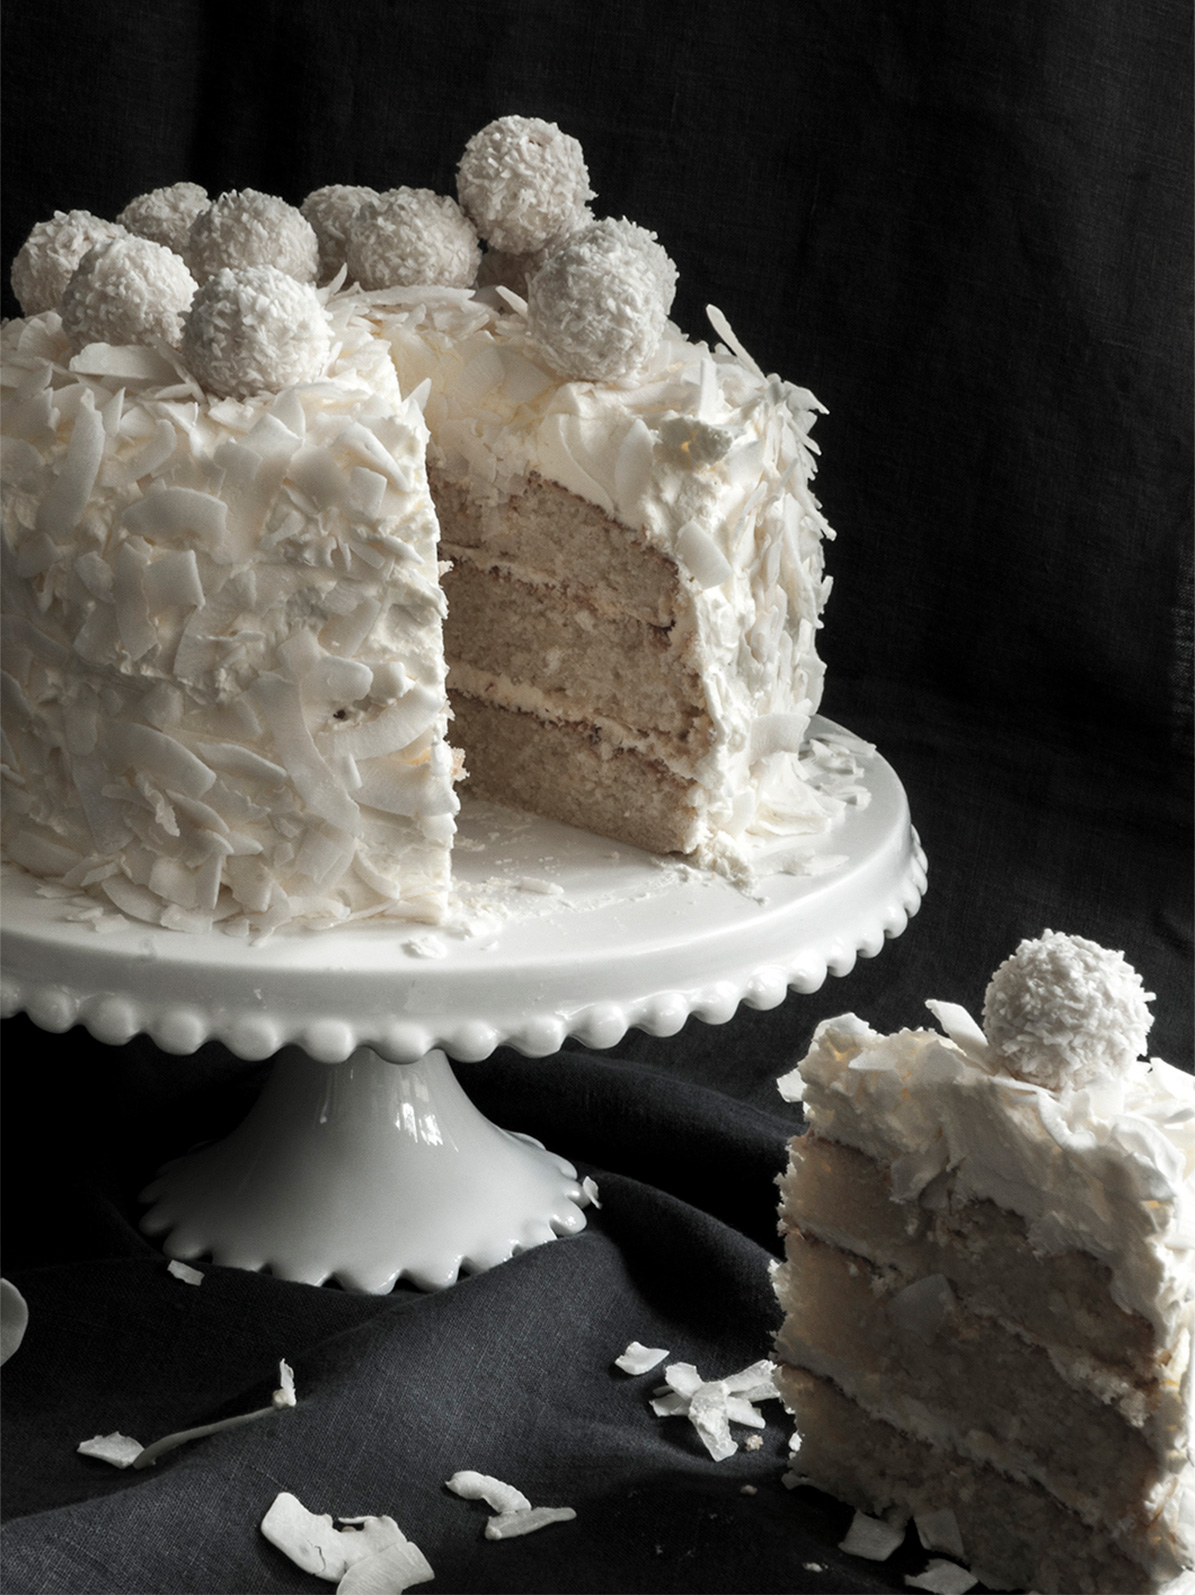 Slicing through the layers of sponge, icing and coconut on the First Communion Coconut Cake